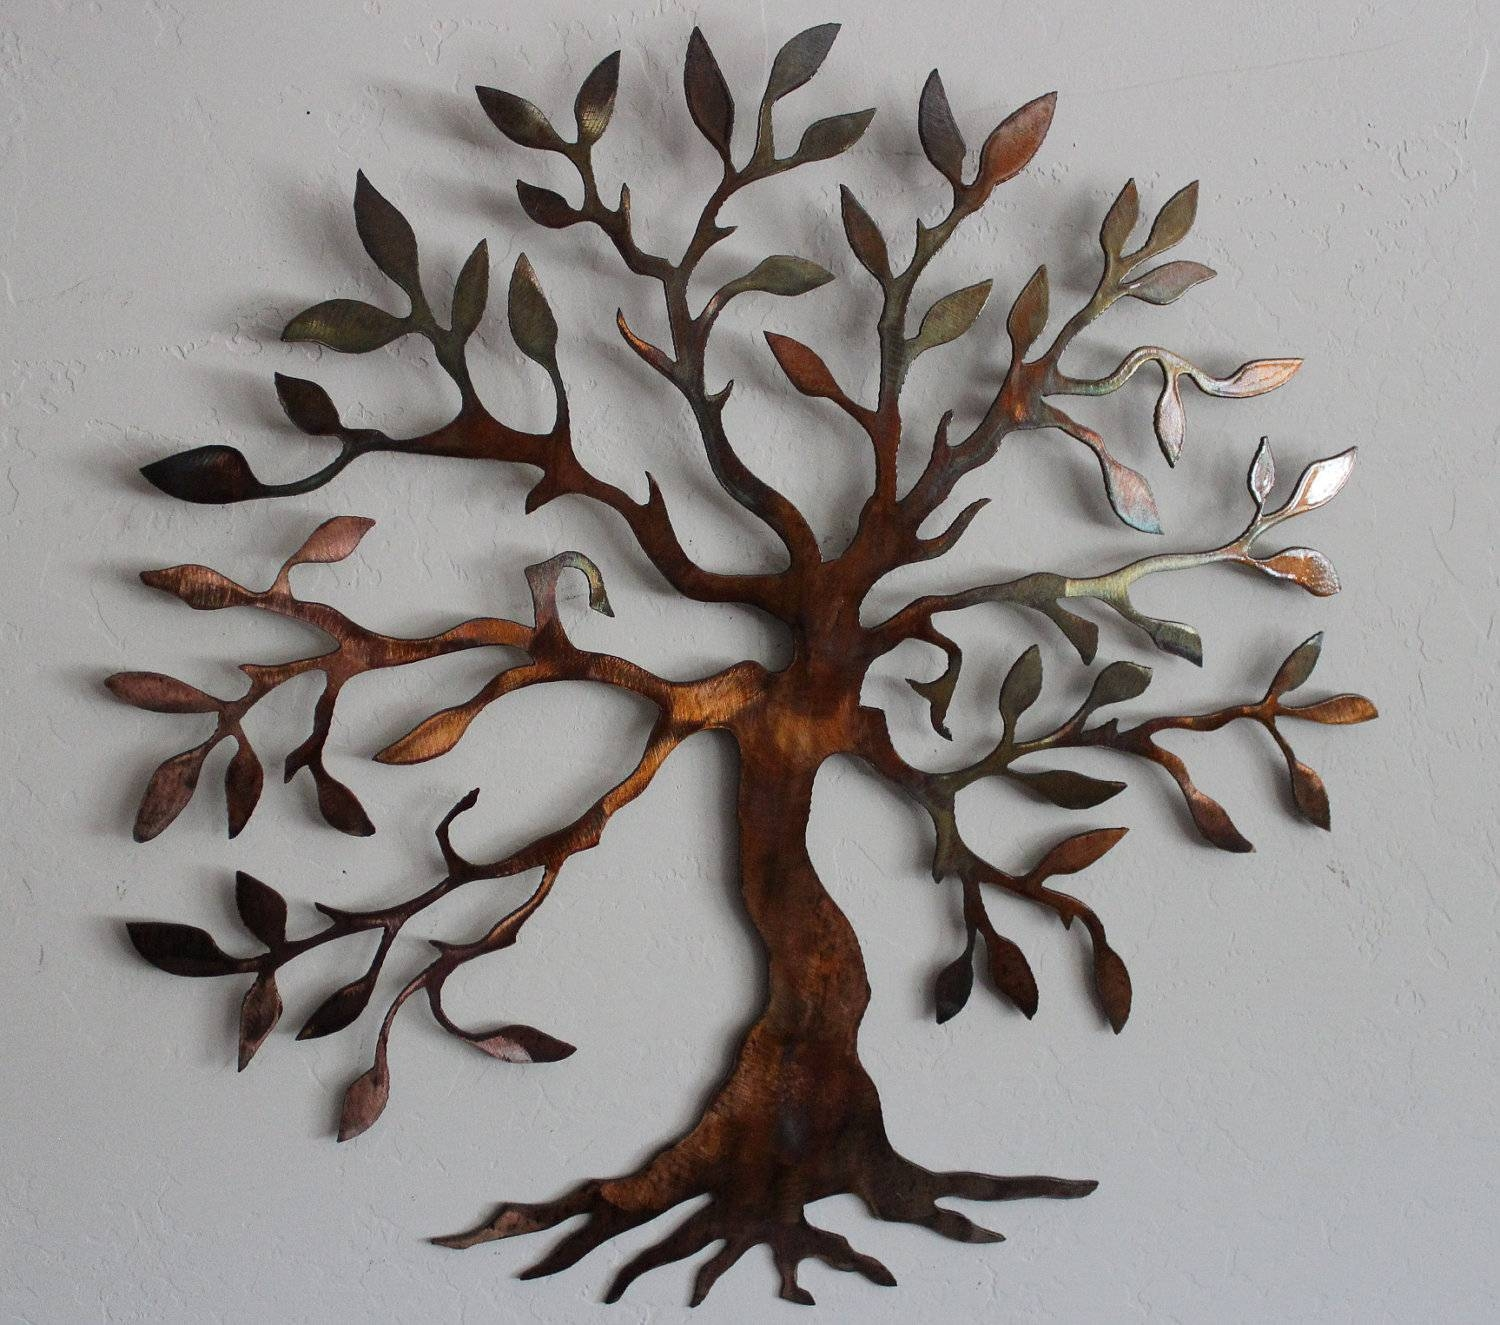 Charming Tree Metal Wall Art Decor Sculpture Design~ Popular Home Regarding Latest Home Metal Wall Art (View 13 of 20)